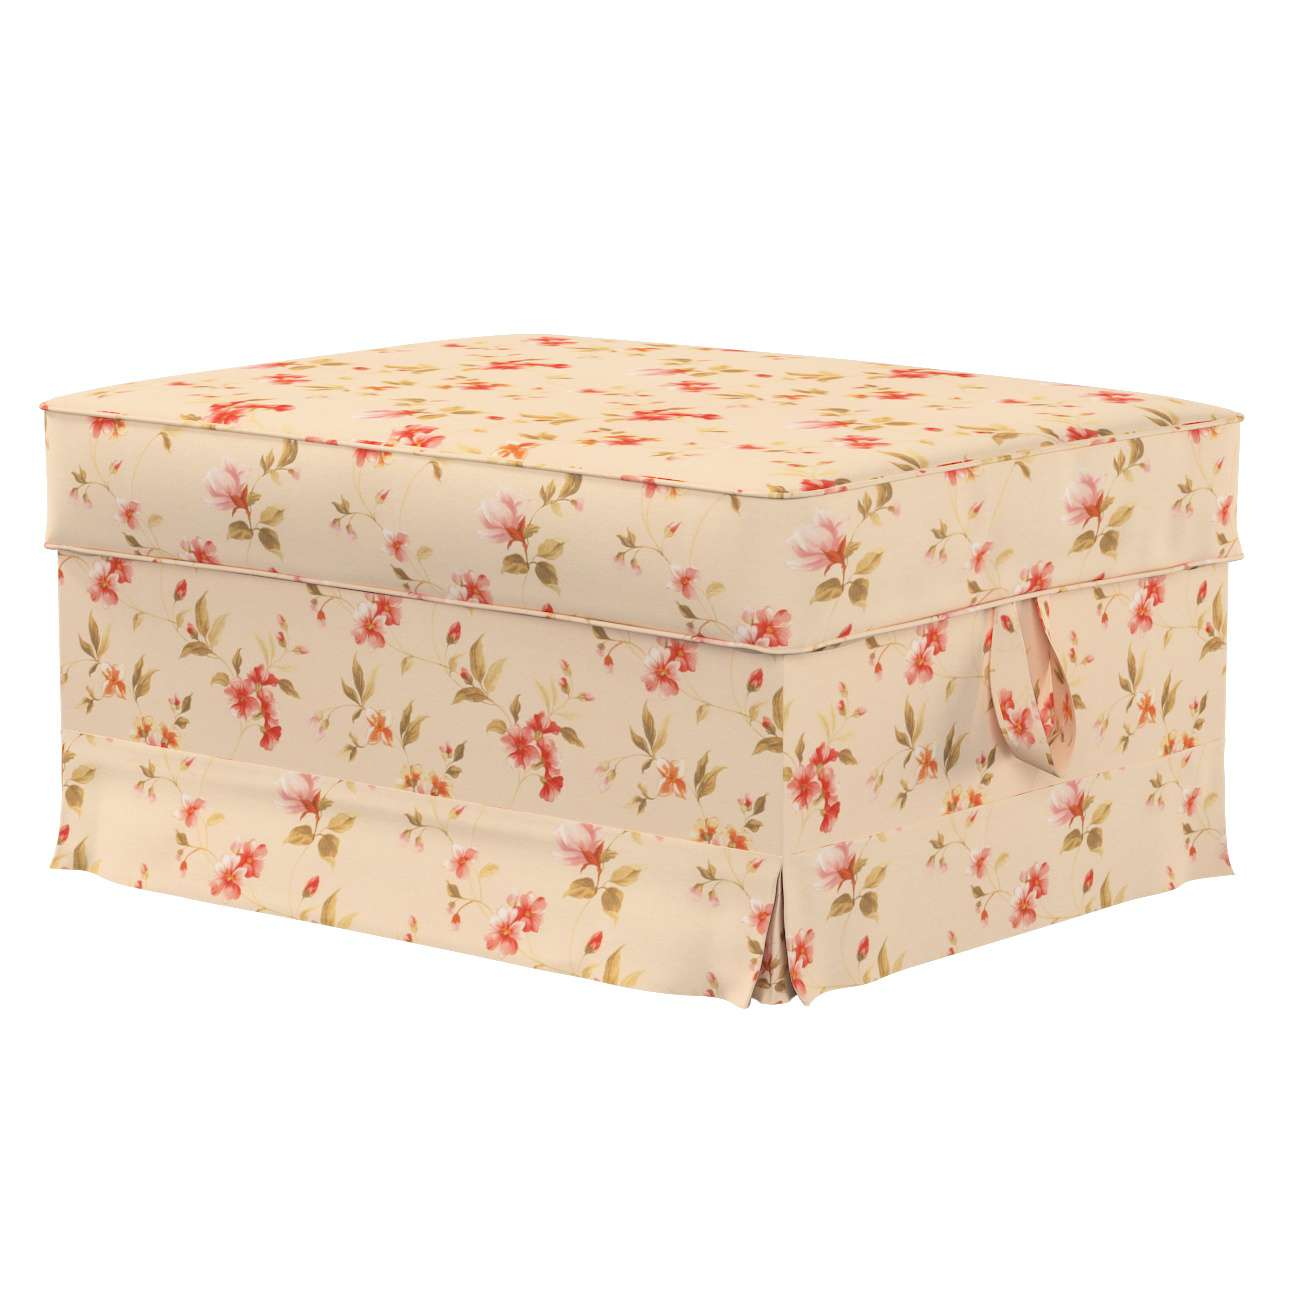 Ektorp Bromma footstool cover Ektorp Bromma footstool cover in collection Londres, fabric: 124-05